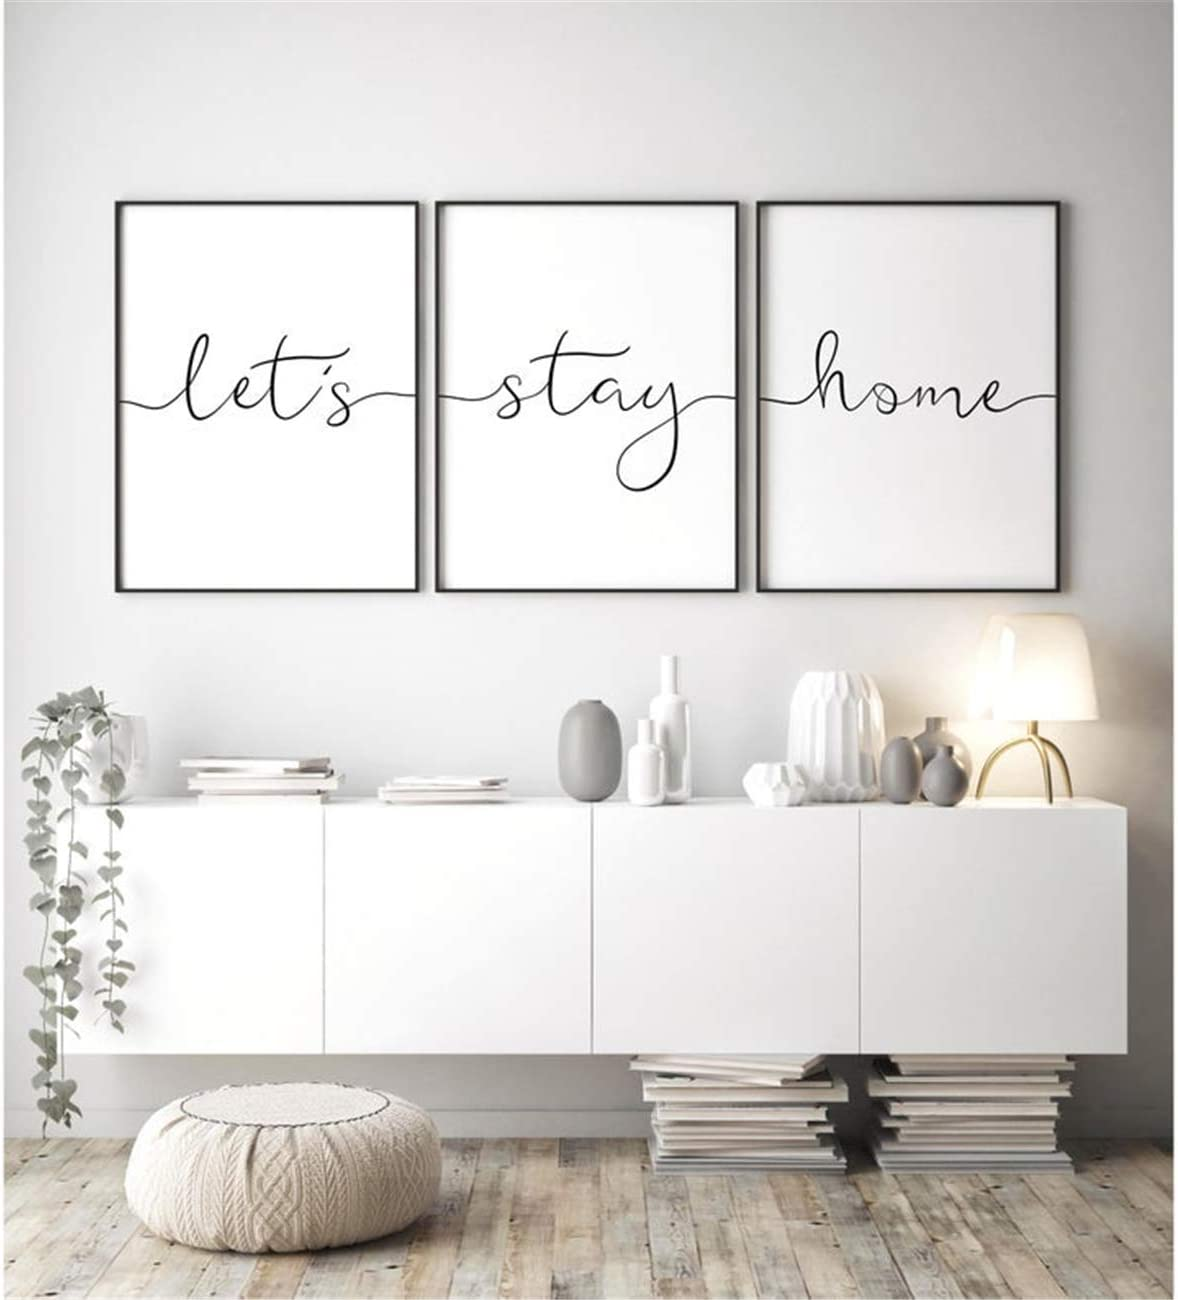 NATVVA 3 Pieces Lets Stay Home Sign Wall Art Canvas Painting Poster Print Family Quote Modern Living Room Decorative Picture Home Decor Framed Ready to Hang